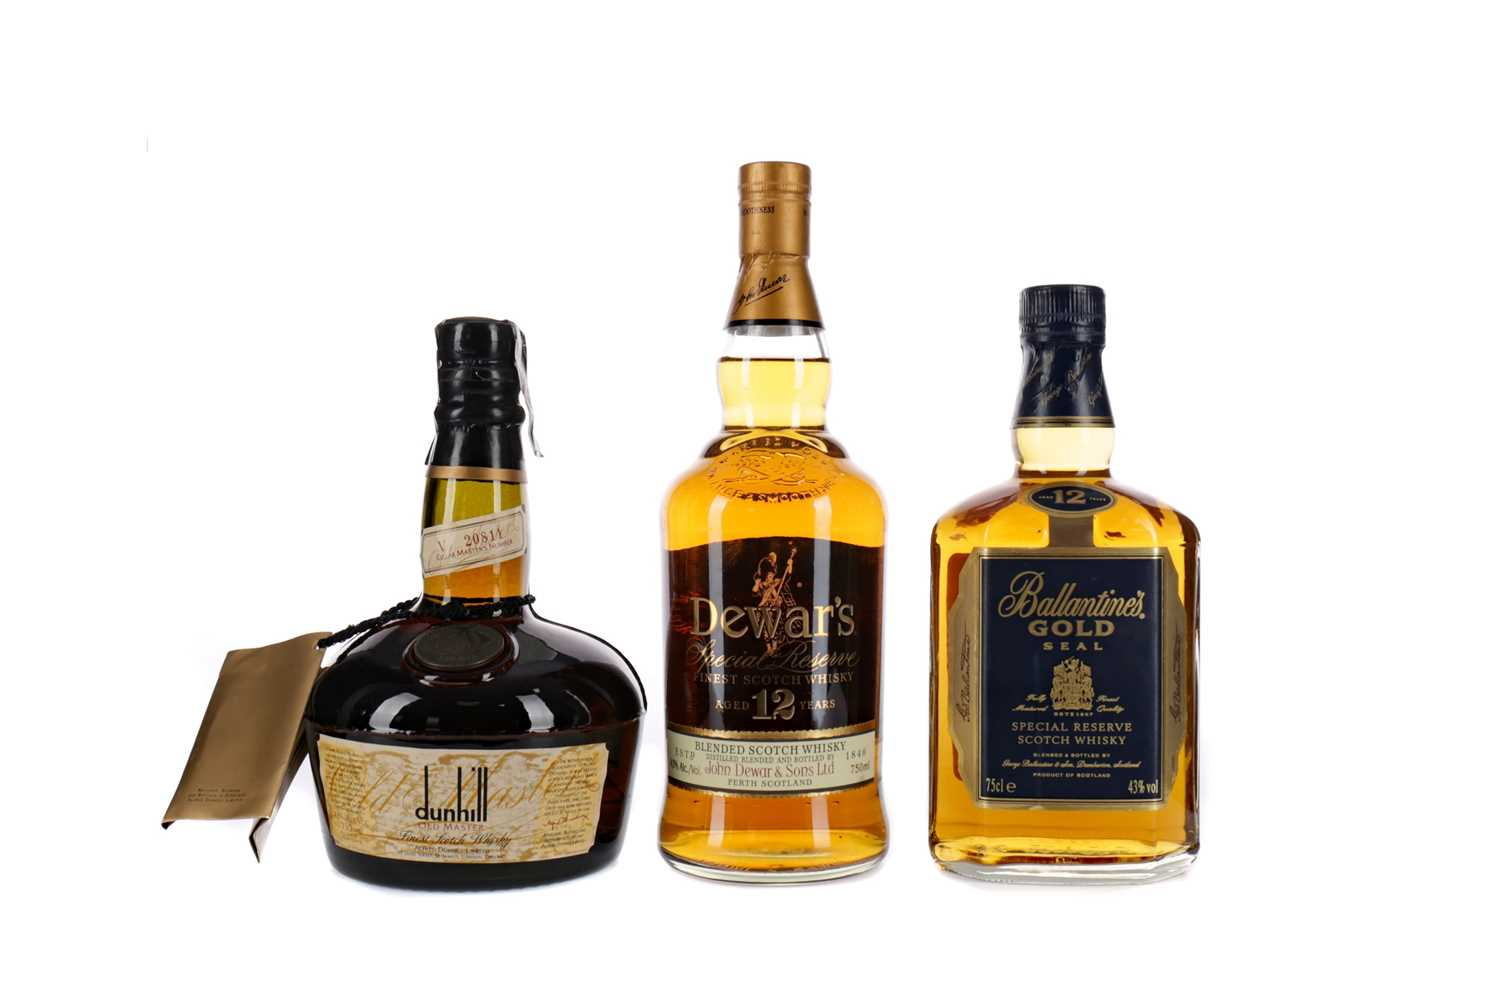 Lot 30 - DUNHILL OLD MASTER, DEWAR'S AGED 12 YEARS AND BALLANTINE'S GOLD SEAL AGED 12 YEARS